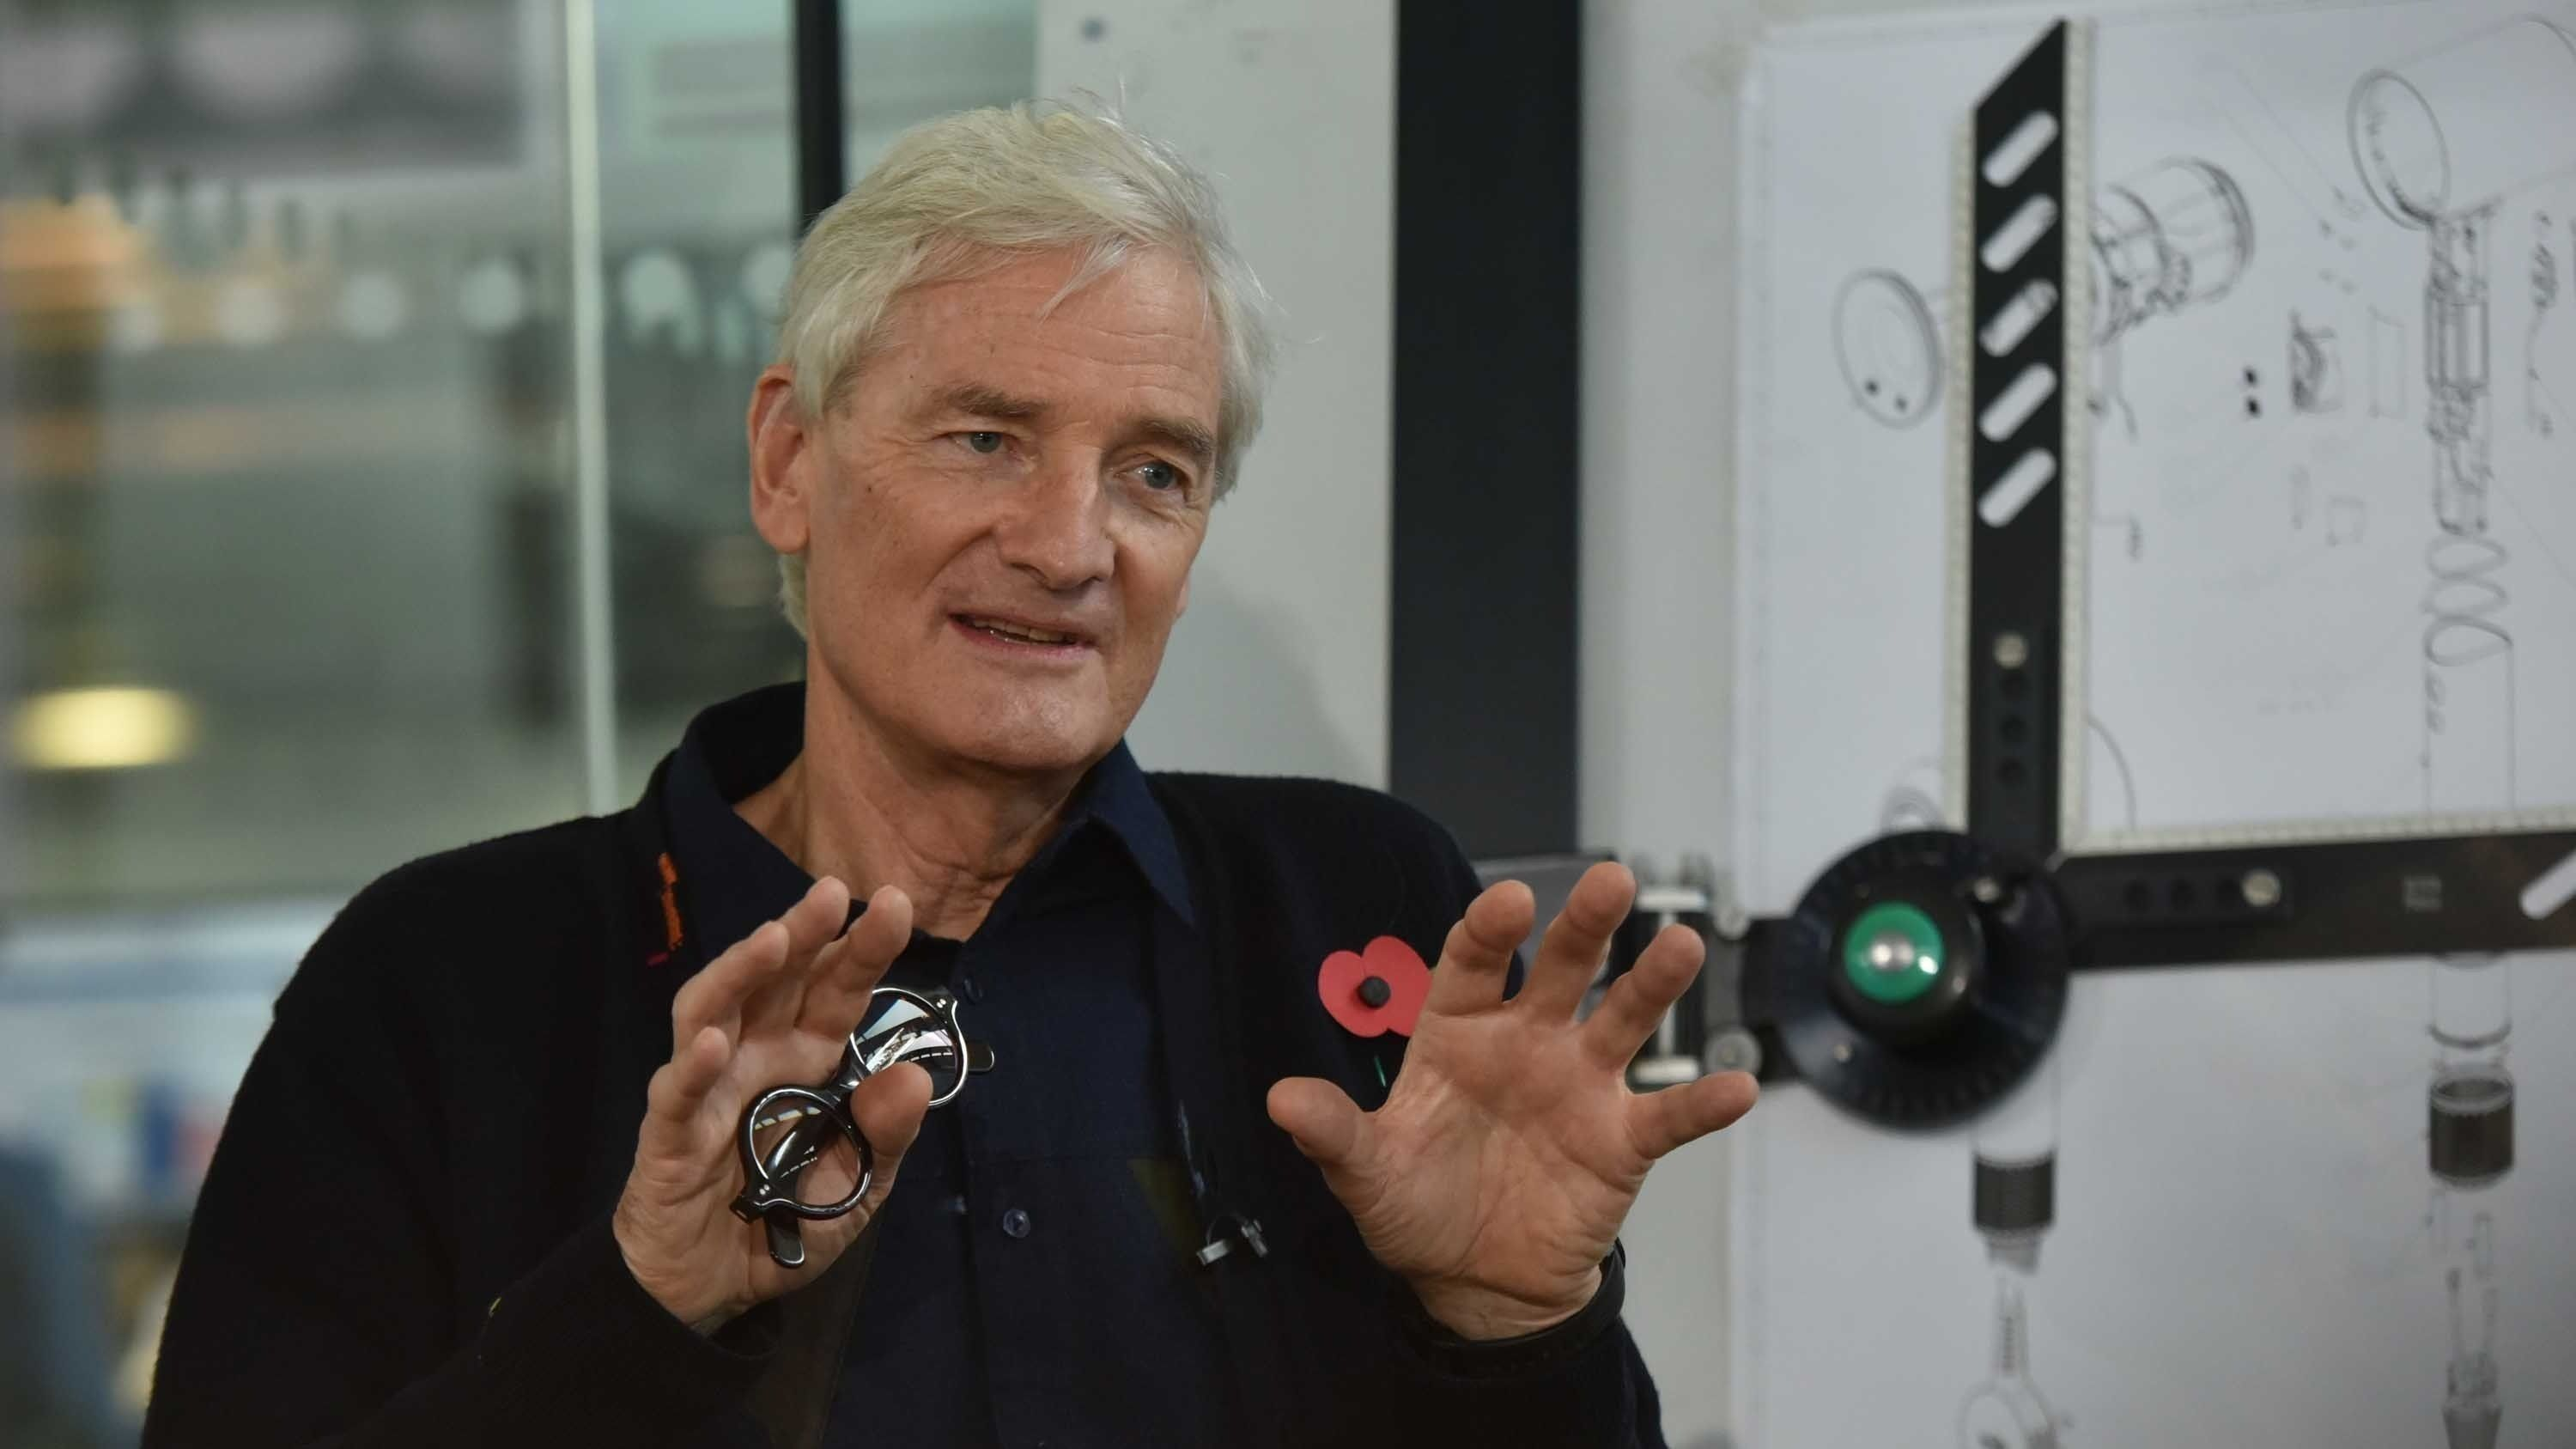 Nick Ferrari Reveals Some Key Facts On Dyson's Move To Singapore